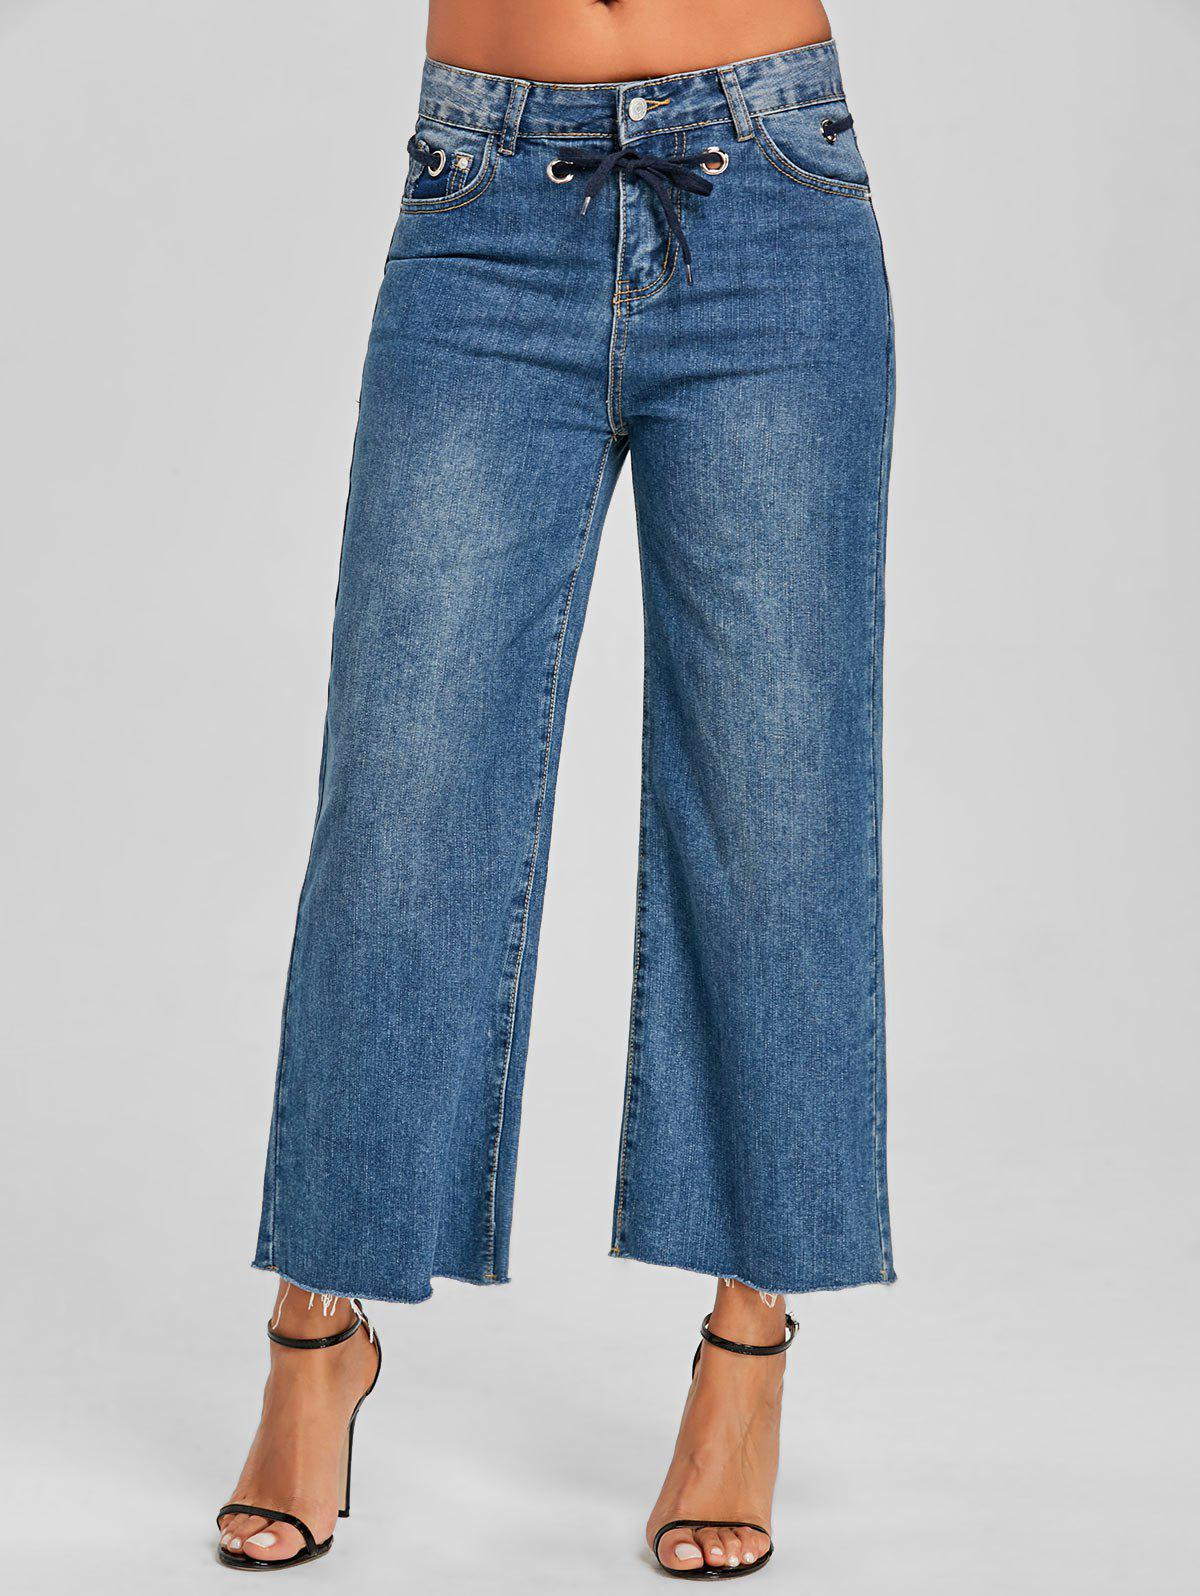 Fancy Tie Up Grommet Wide Leg Jeans